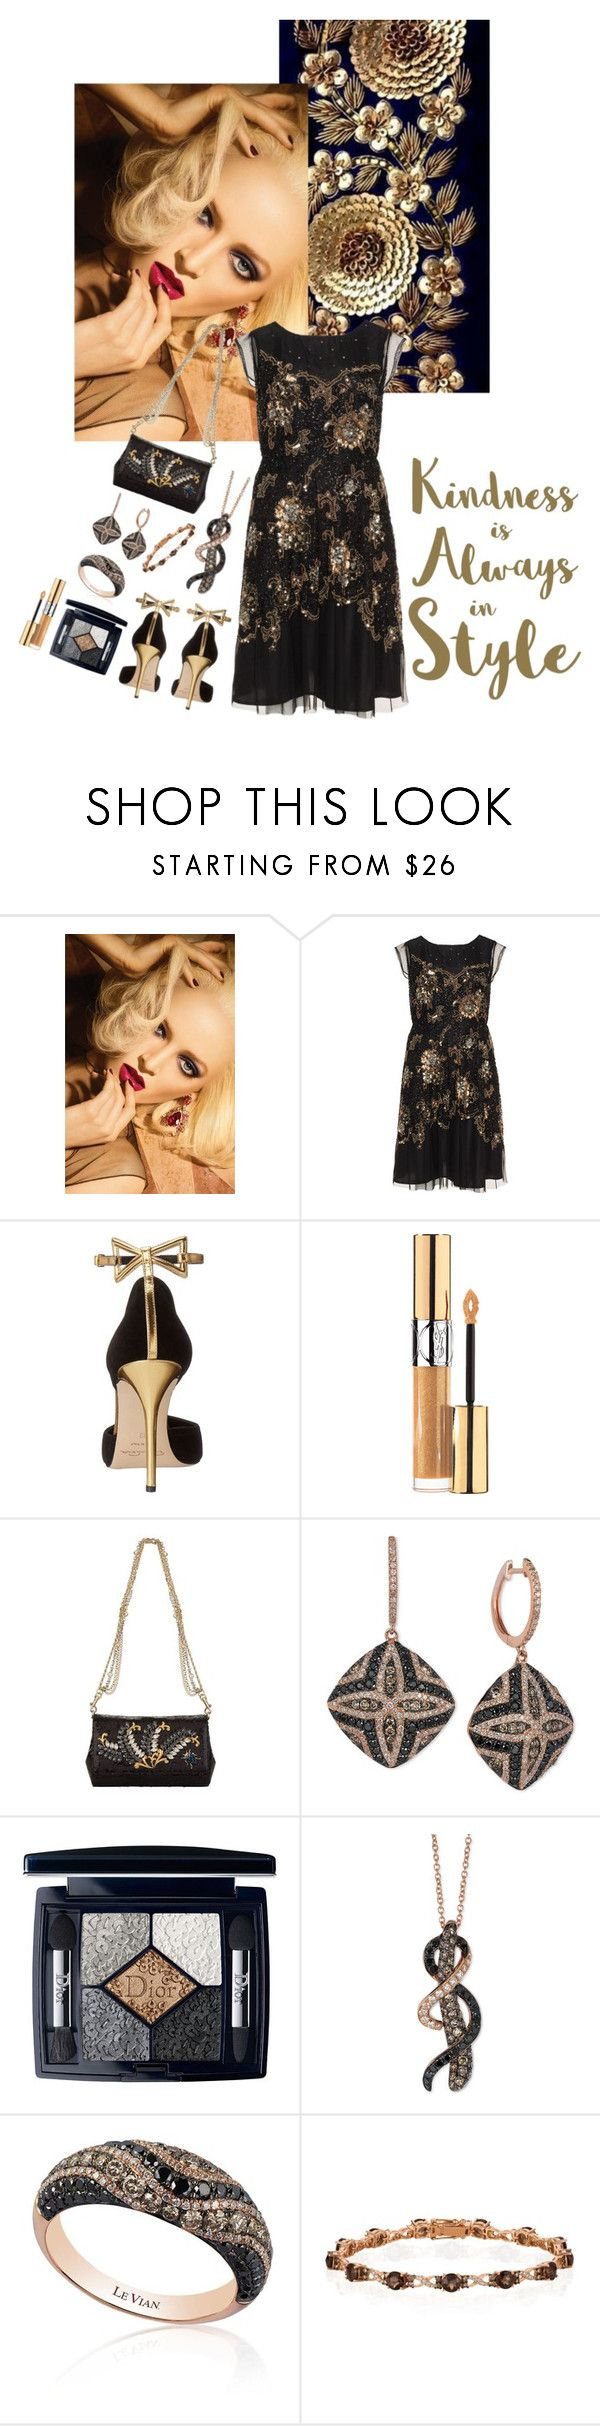 """""""Kindness is Always in Style"""" by jeanine65 ❤ liked on Polyvore featuring Christian Dior, navabi, Oscar de la Renta, Yves Saint Laurent, Dolce&Gabbana, LE VIAN and Sixtrees"""